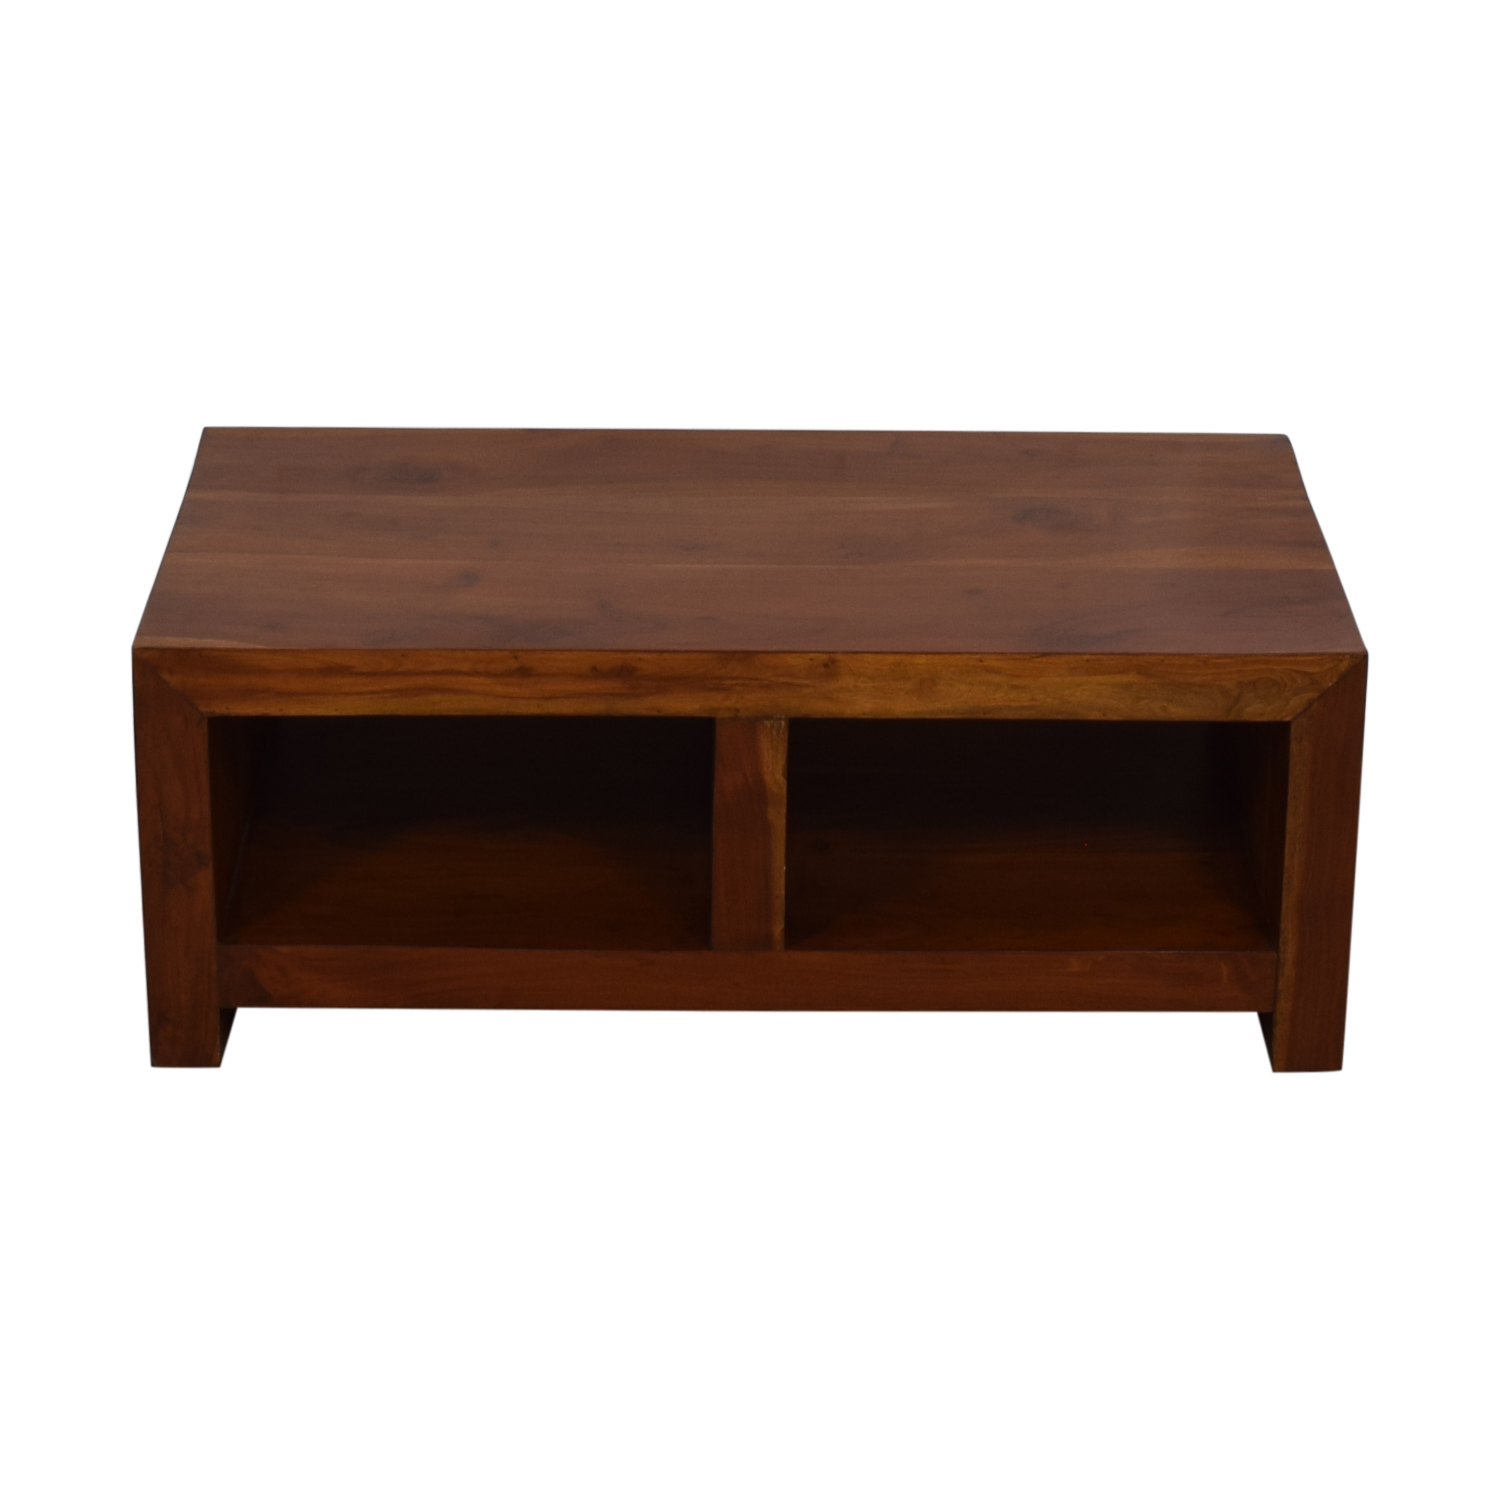 Wood Coffee Table dimensions